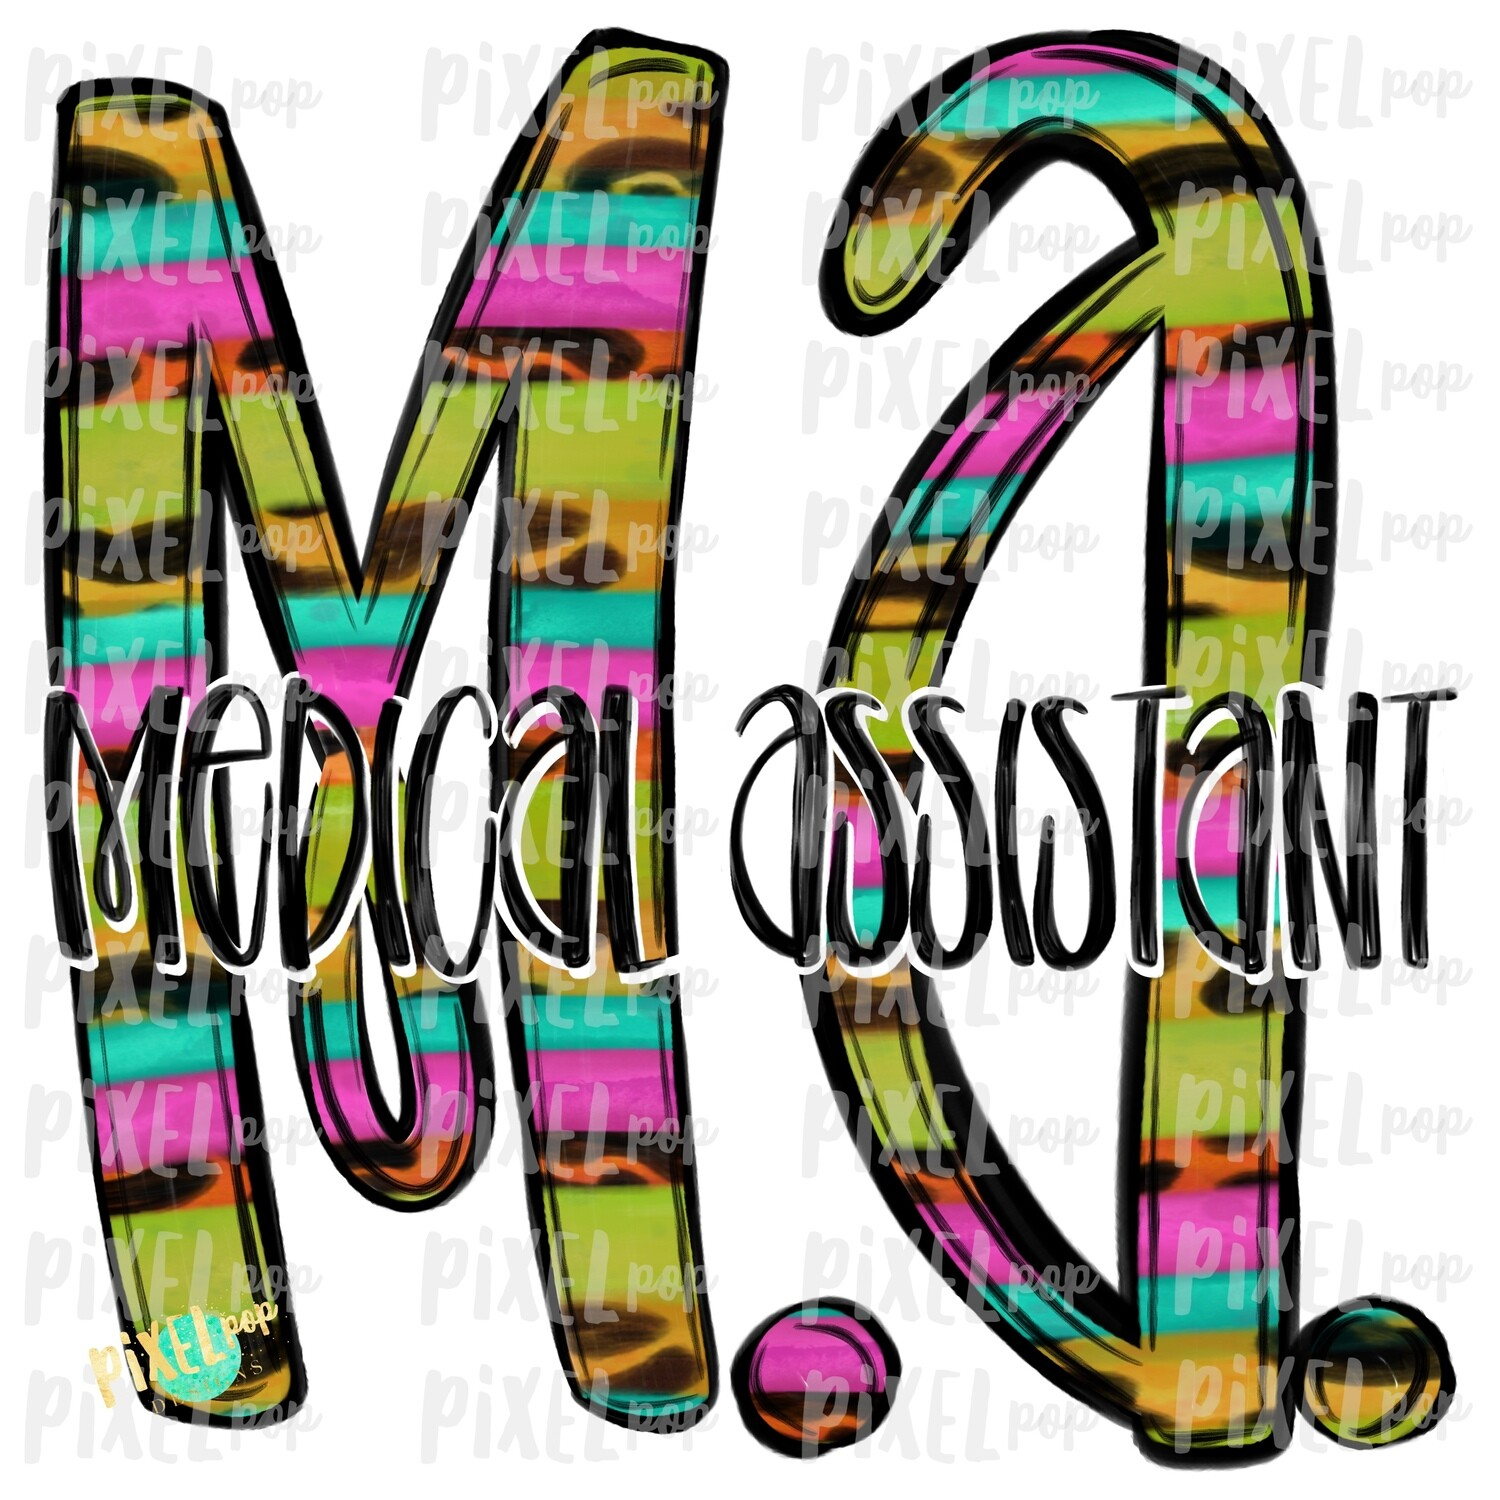 Medical Assistant MA Bright Sublimation Design | Sublimation | Hand Drawn Art | Nursing PNG | Medical Art | Digital Download | Art Clipart